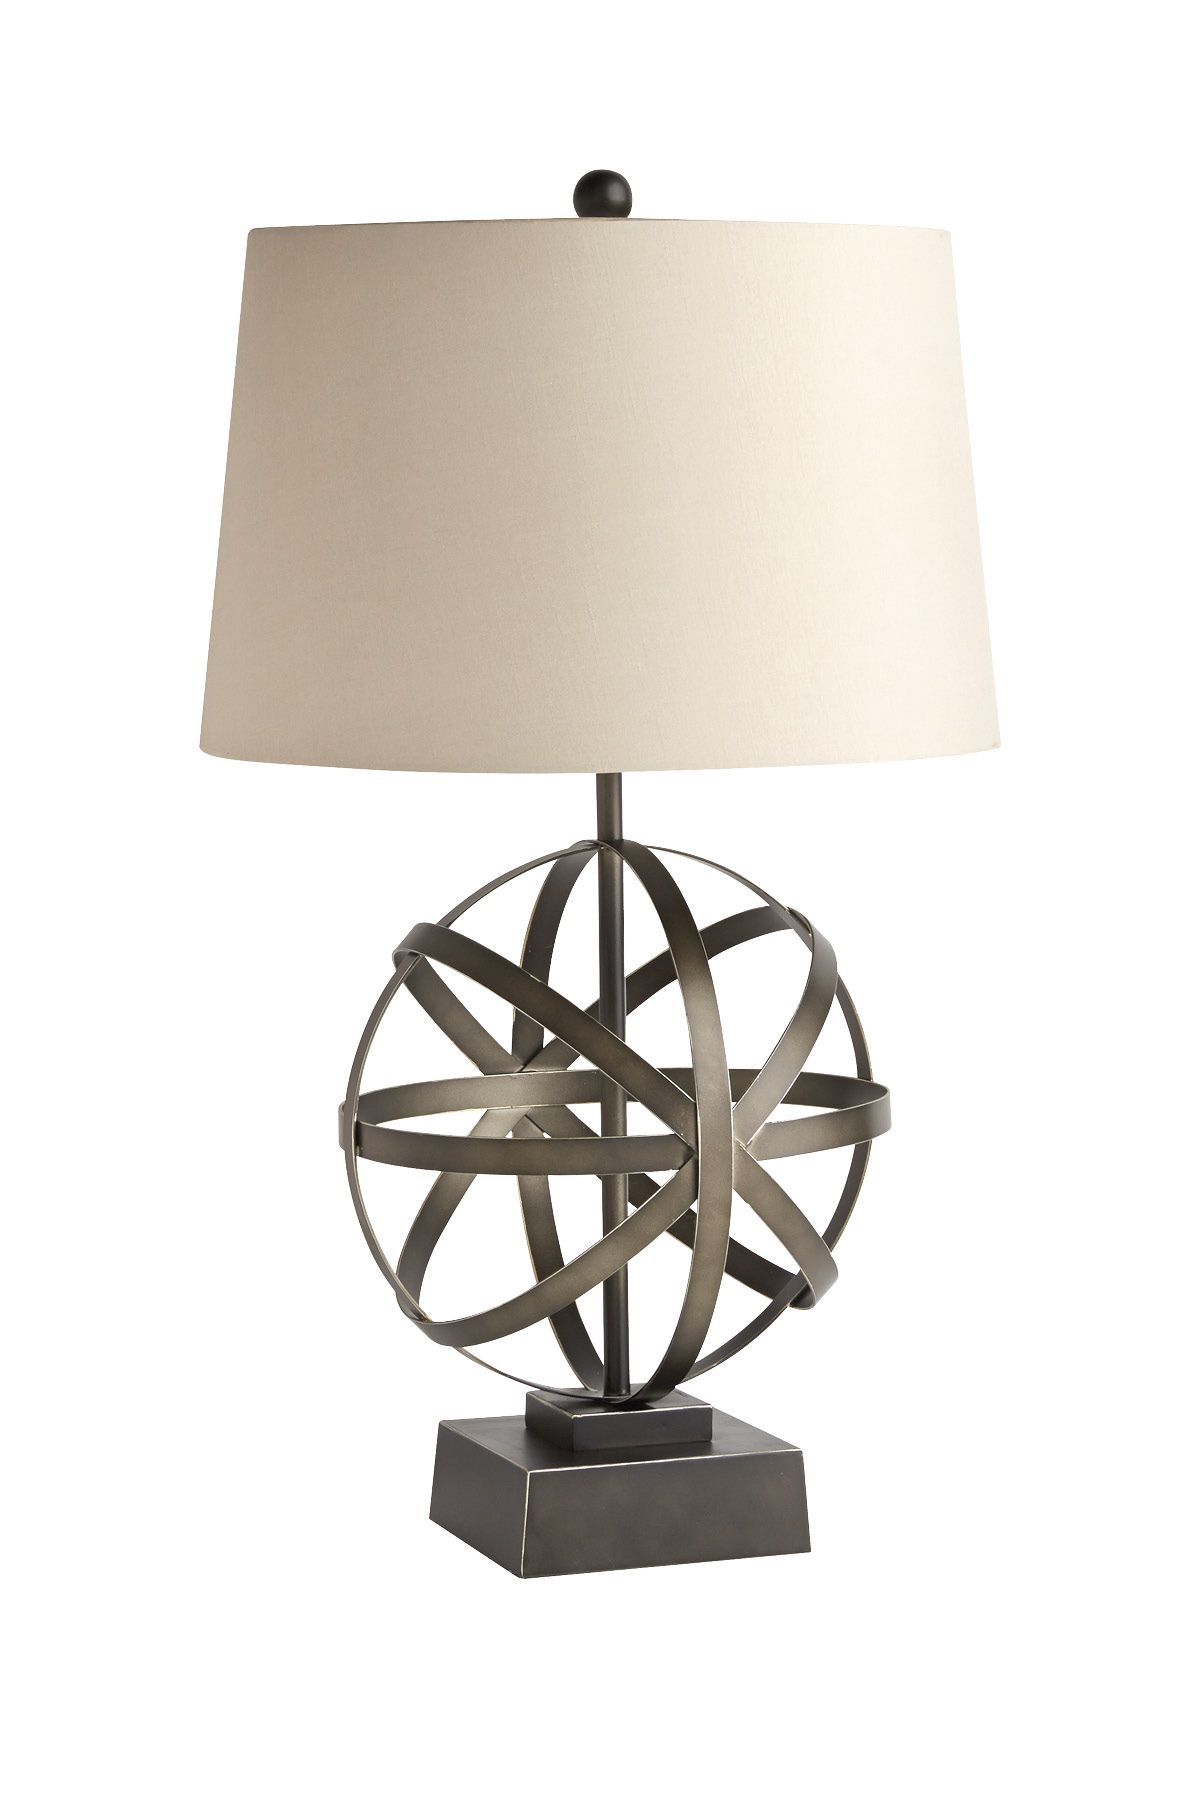 Attractive Spiral Atom Table Lamp X Find Affordable Lamps For Your Home That Will  Complement The Rest Of Your Furniture.